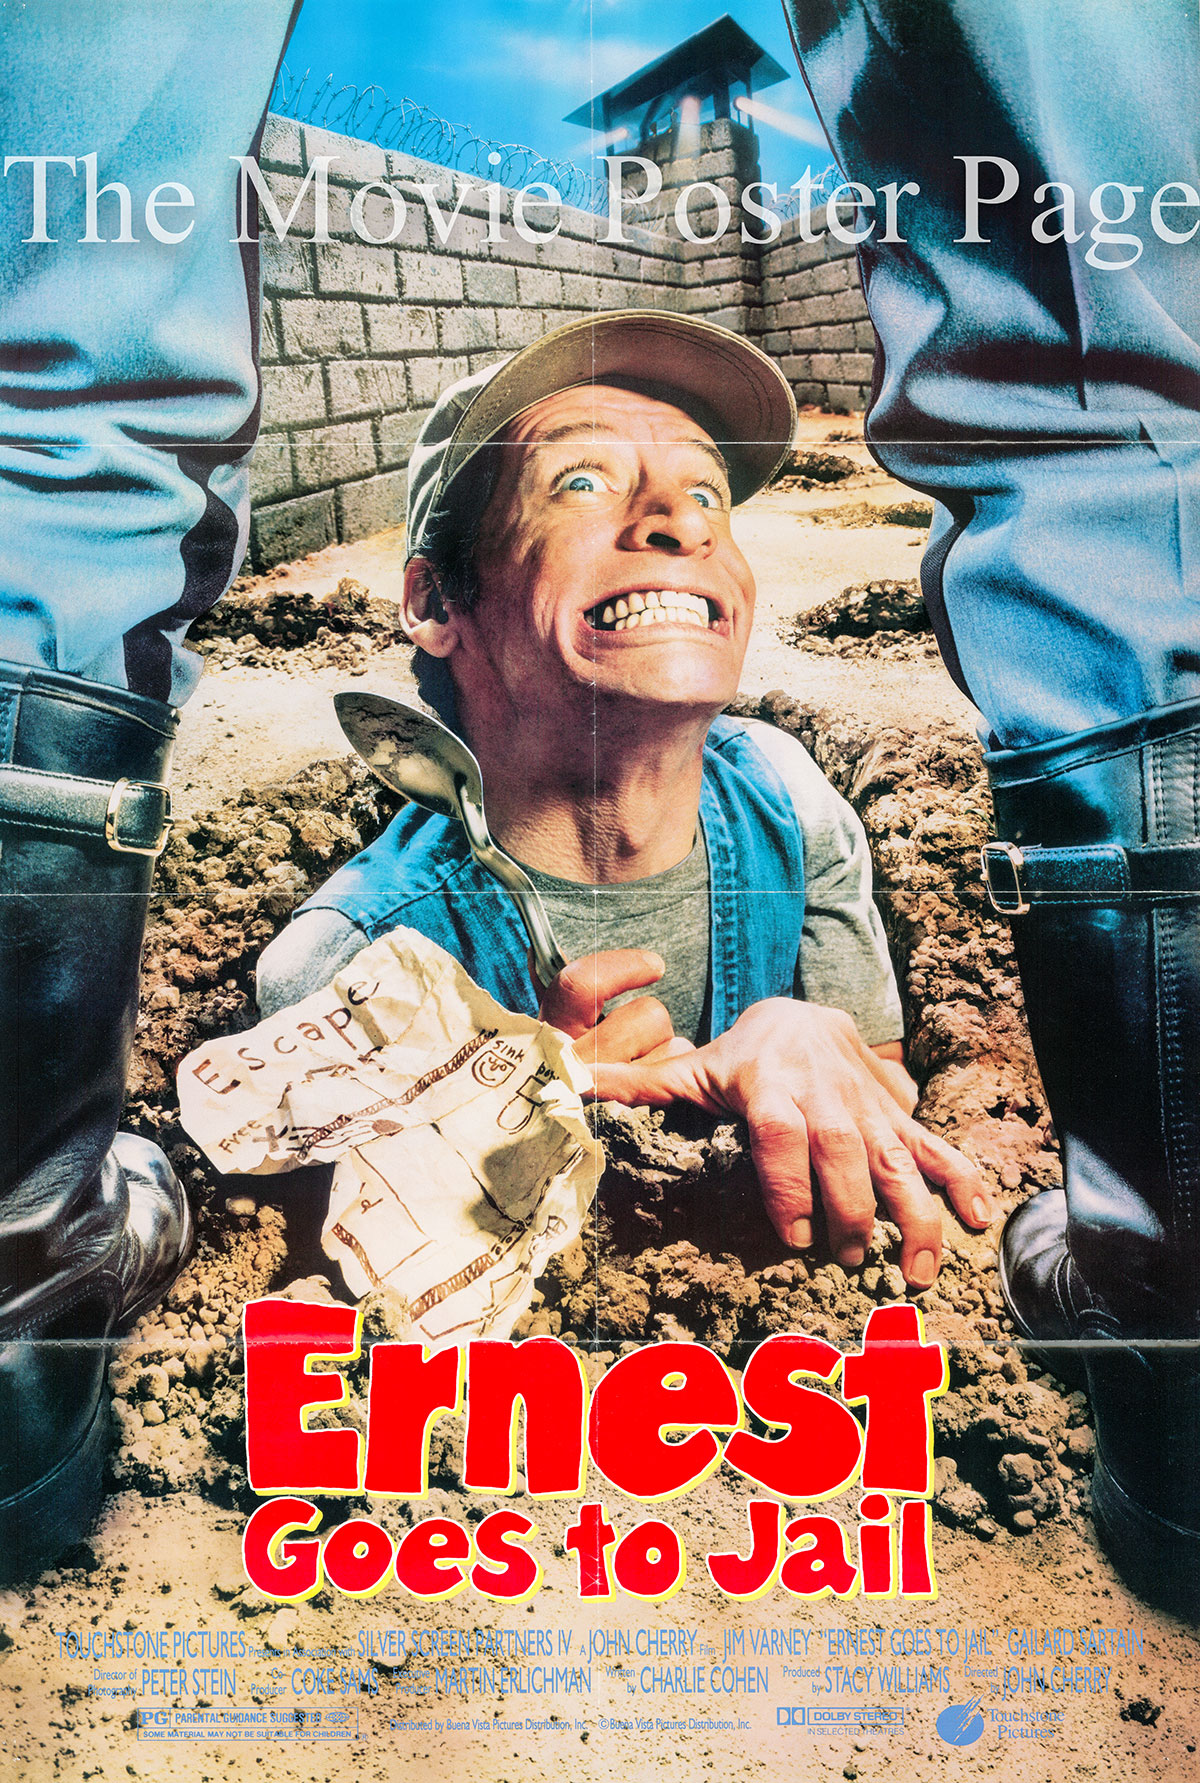 Pictured is a US promotional poster for the 1990 John R. Cherry III film Ernest Goes to Jail starring Jim Varney.